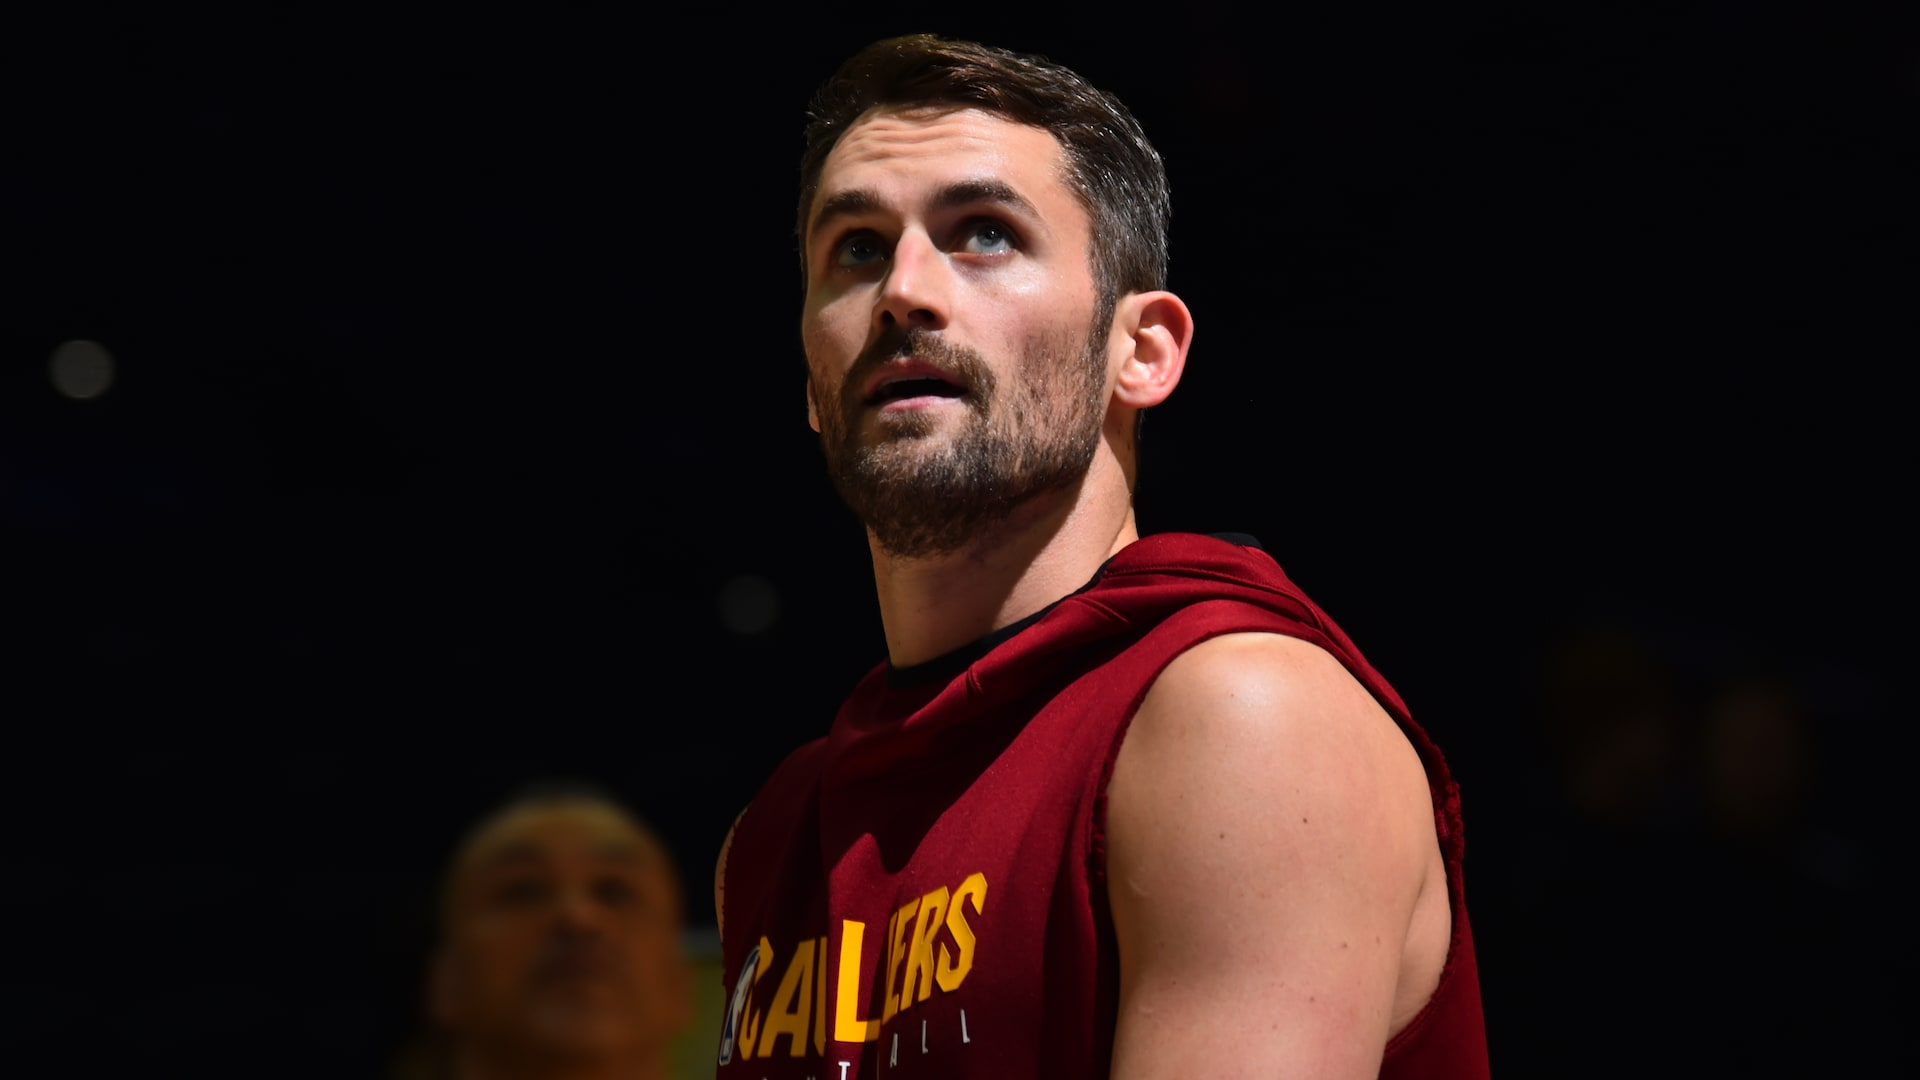 Kevin Love honored with Arthur Ashe Courage Award